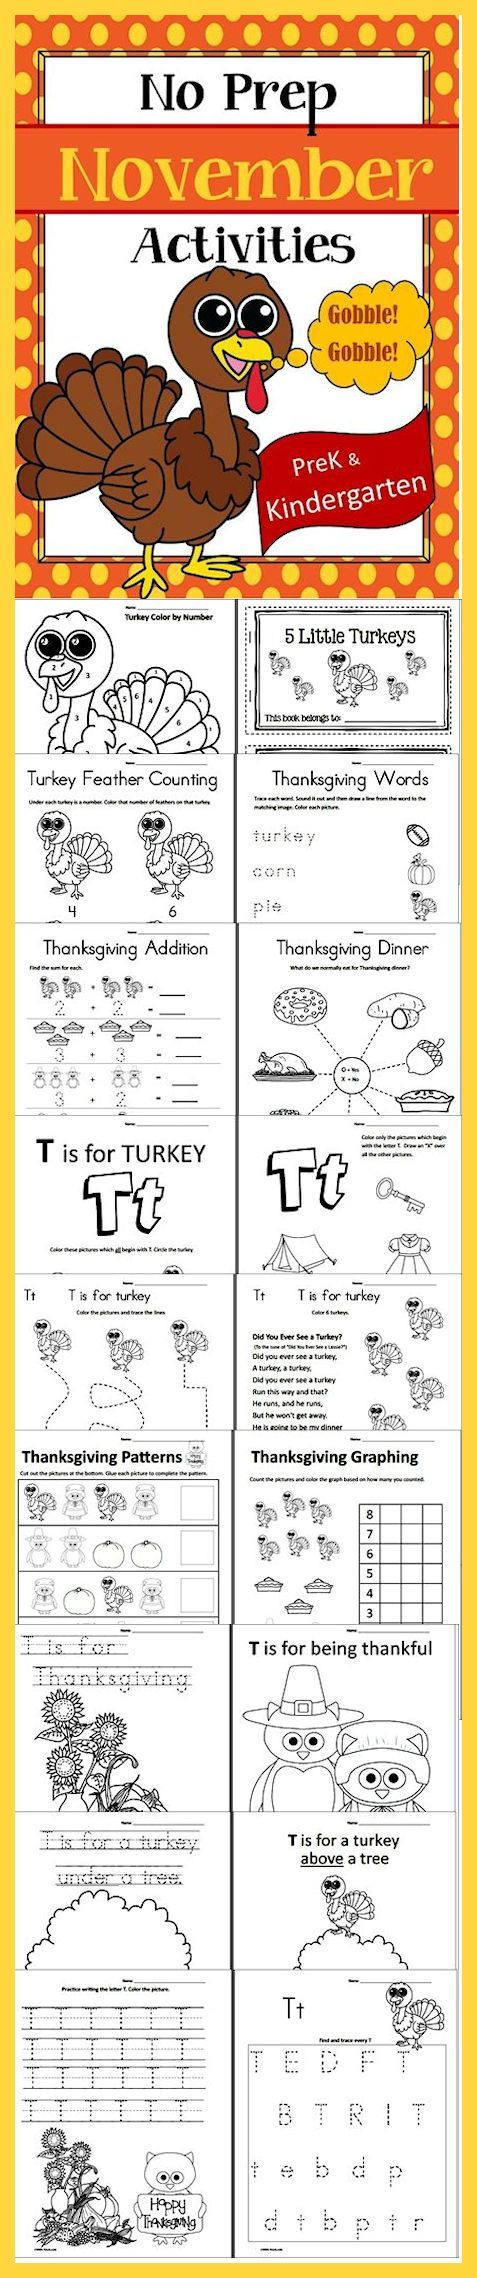 November - Thanksgiving Themed - No Prep - PreK through Kindergarten Worksheets. Skills & Activities included in this packet: Tracing, Printing, Cutting, Coloring, Gluing, Matching, Counting, Adding, Comparing, Patterning and more! Download Club subscribers can download @ http://www.christianhomeschoolhub.com/pt/Thanksgiving-Related-Resources/wiki.htm